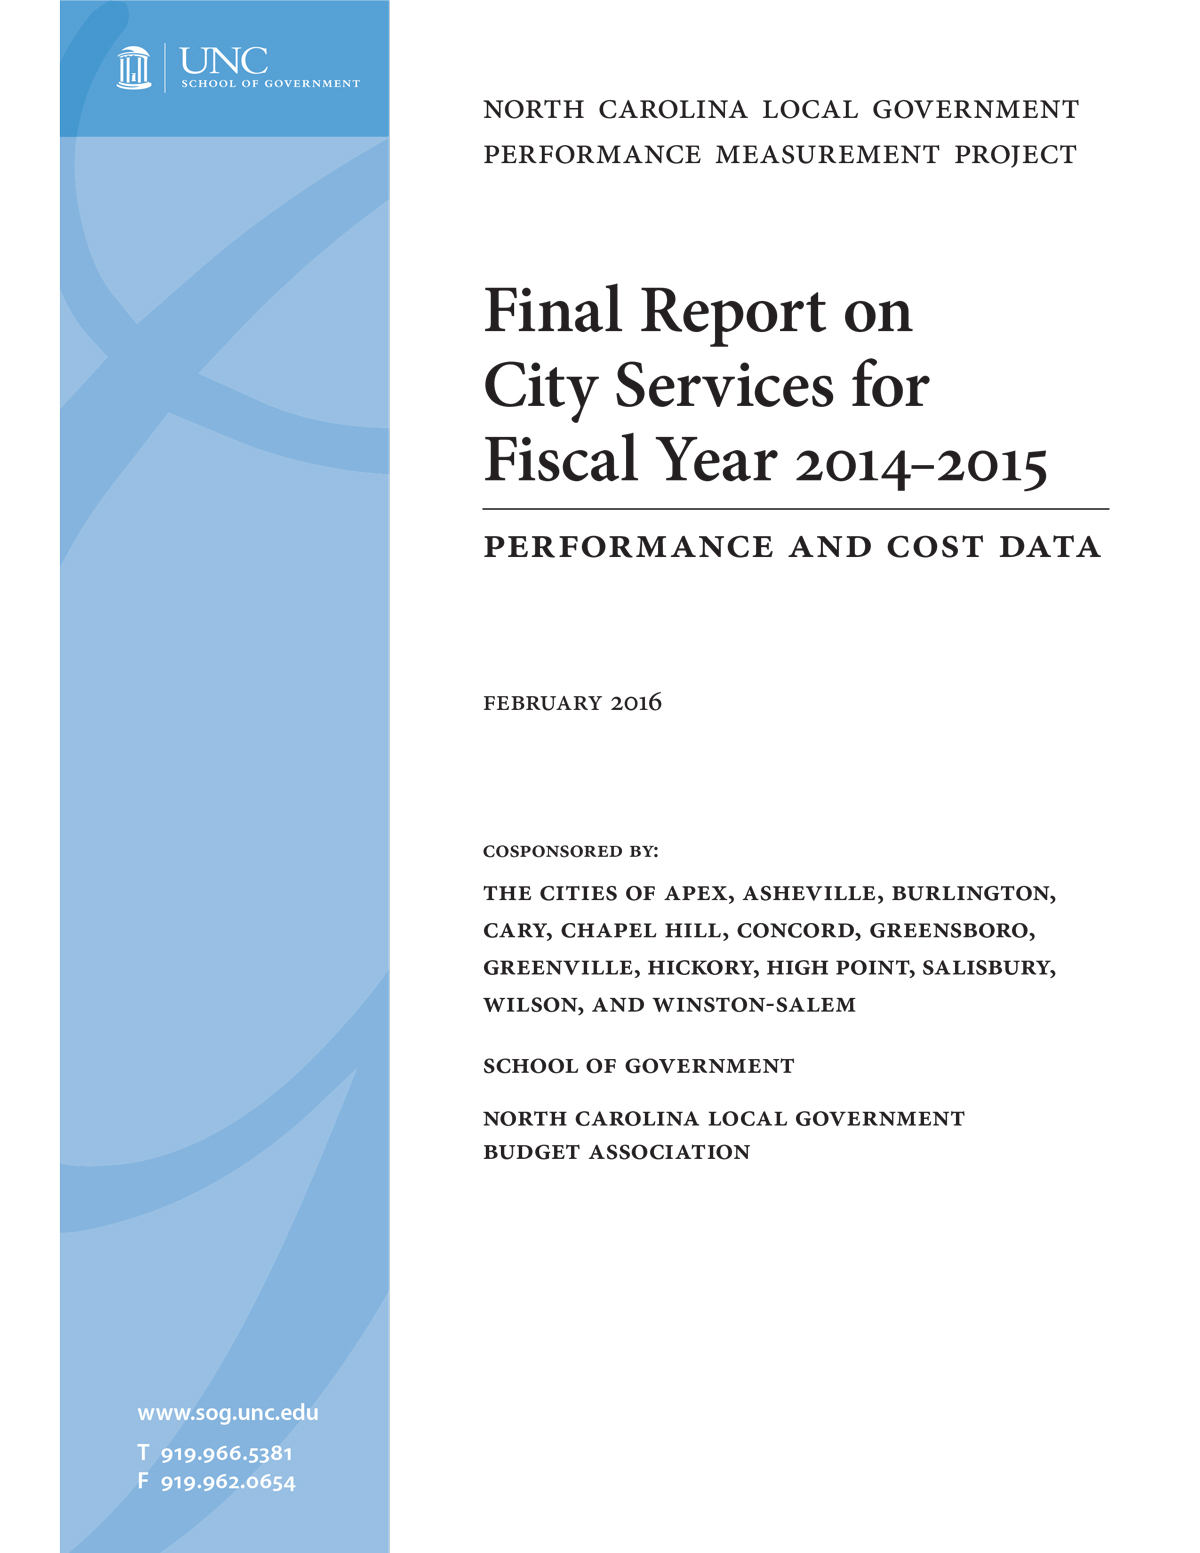 Final Report on City Services for Fiscal Year 2014-2015: Performance and Cost Data